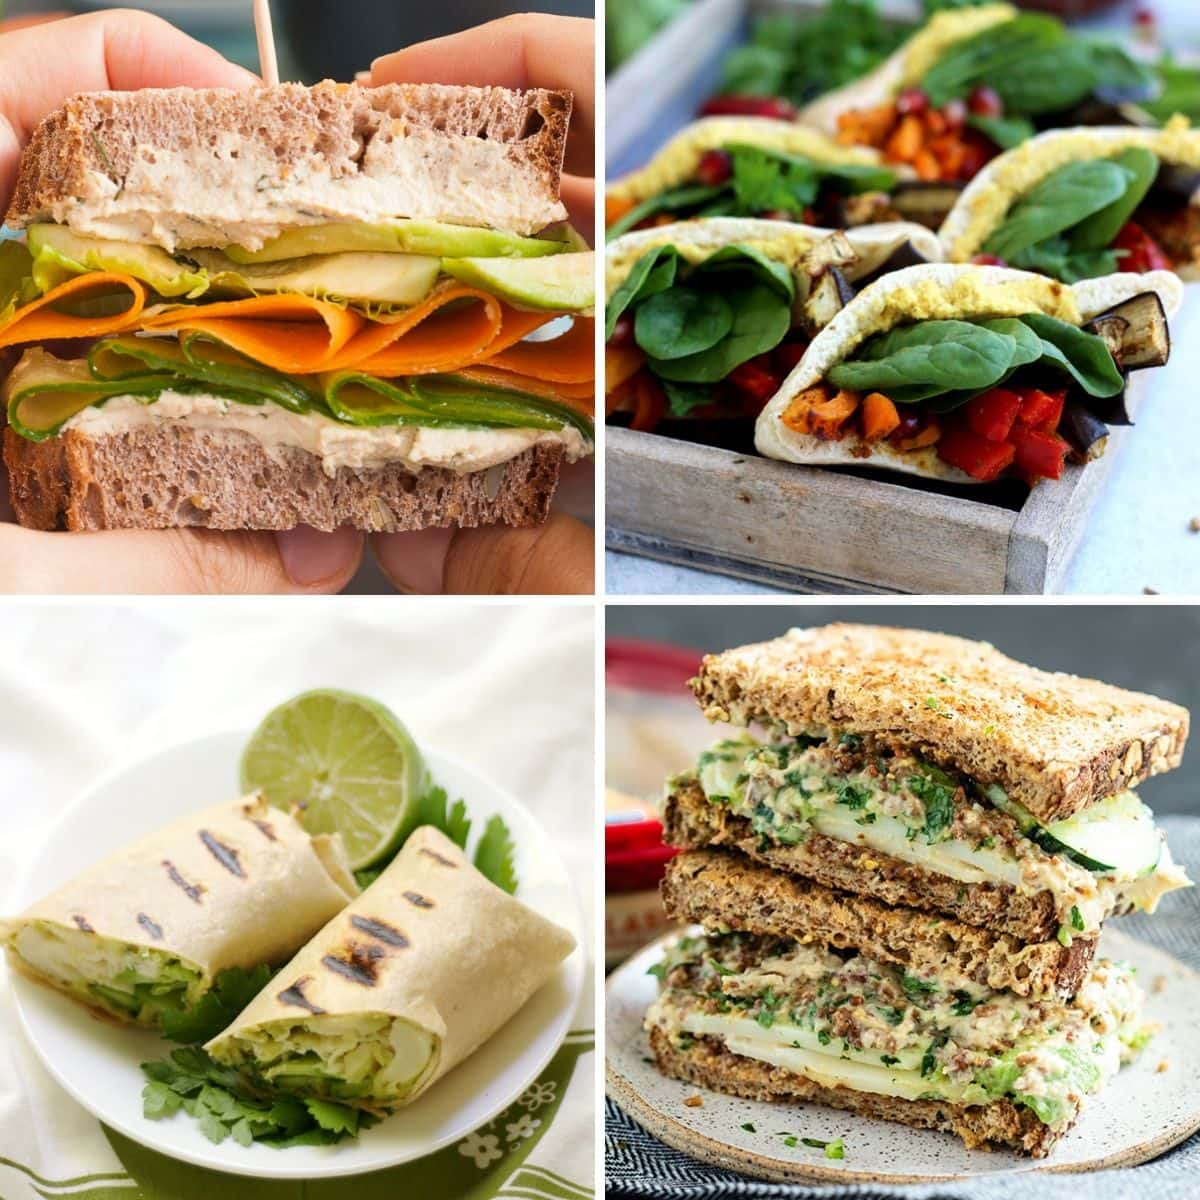 4 images 4 food: Veggie-loaded Sandwich, Pita Pockets with Roasted Veggies and Hummus, Grilled Green Goddess Wrap, Tabbouleh Hummus Avocado Sandwich